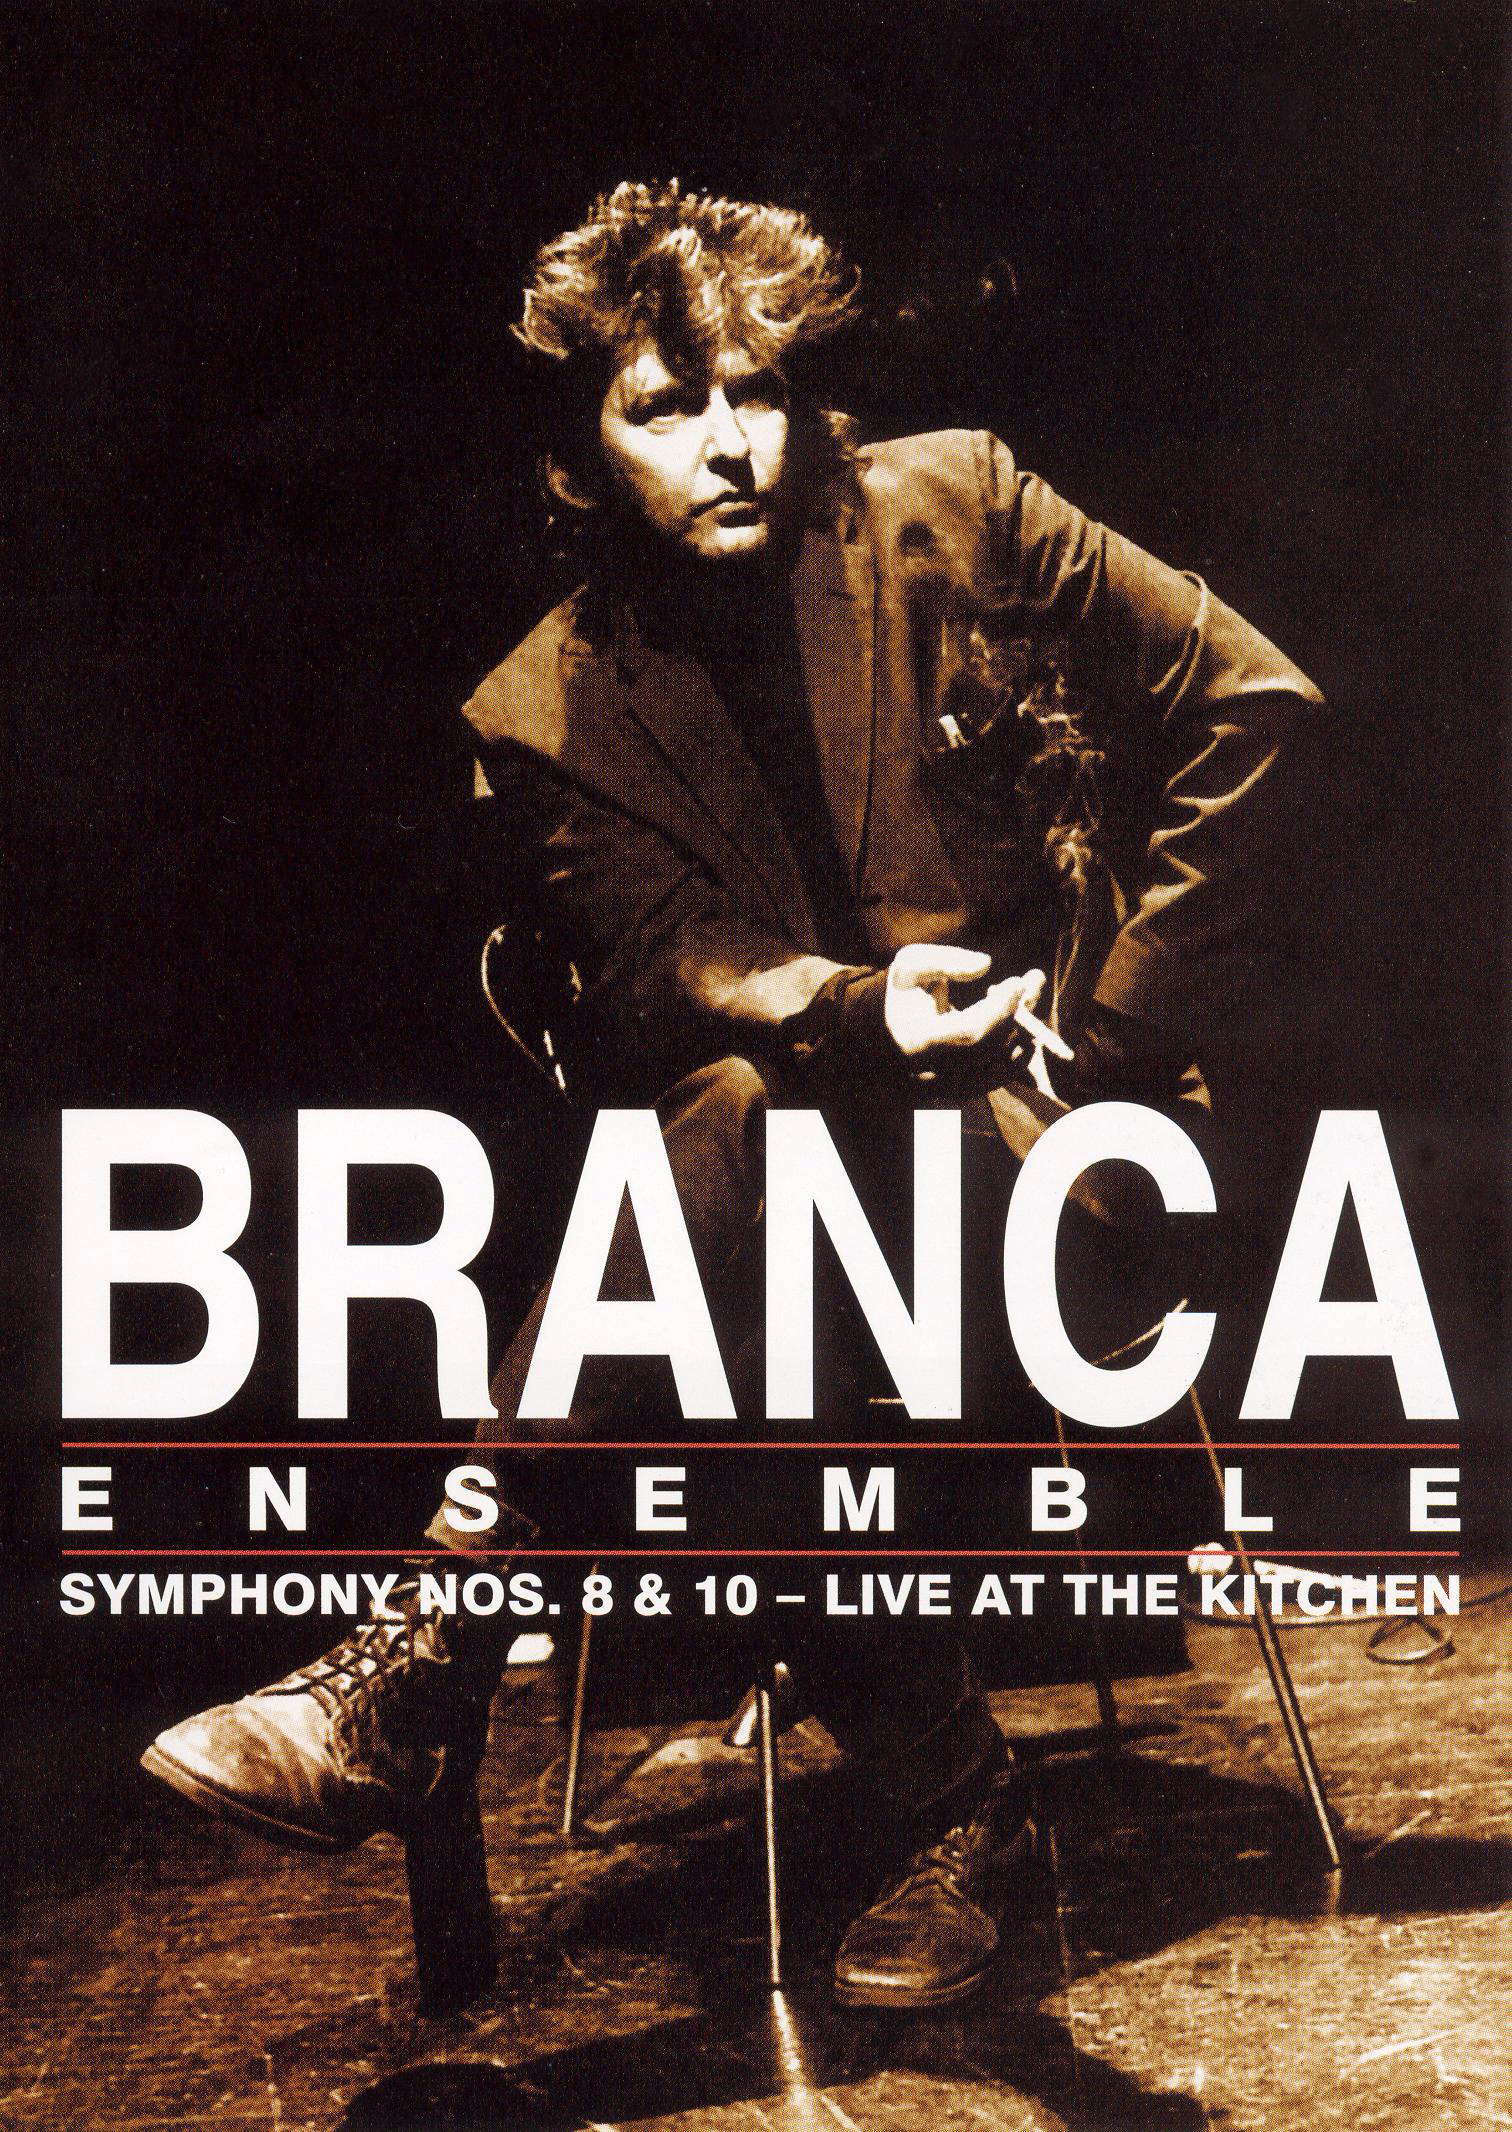 Glenn Branca: Symphonies 8 and 10 - Live at the Kitchen